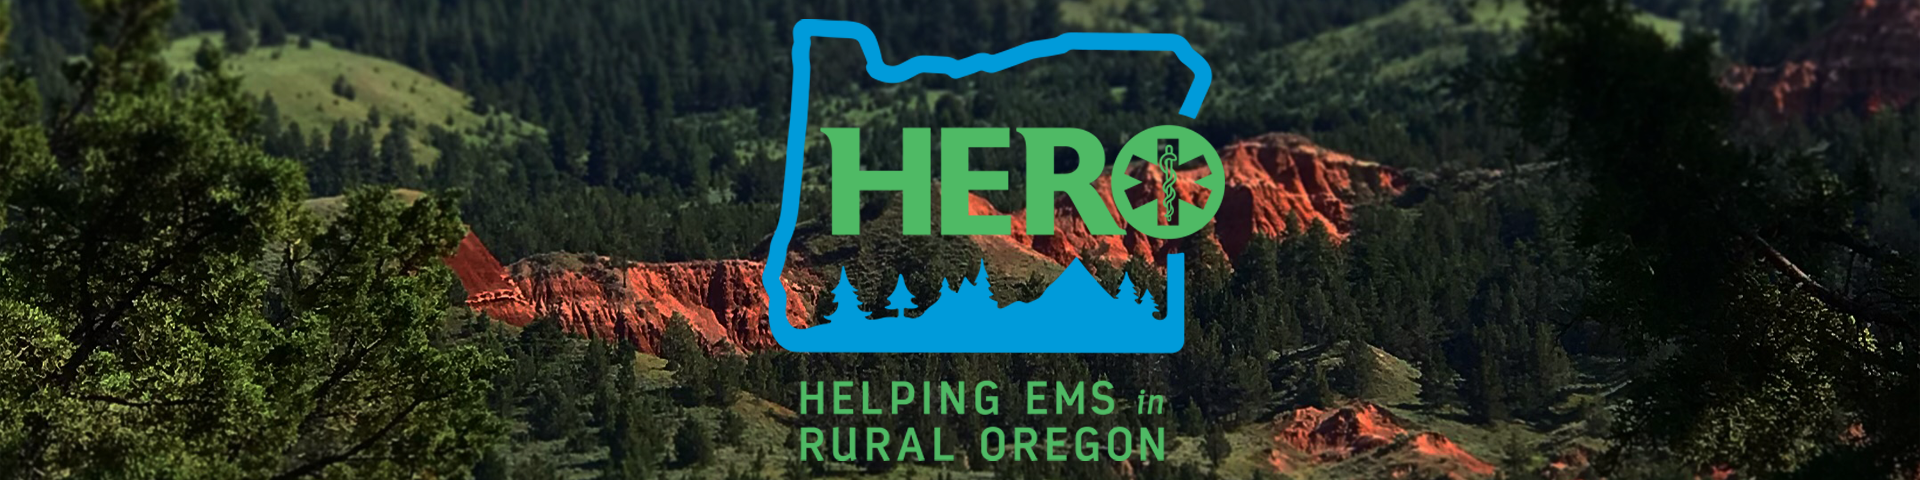 HERO: Helping EMS in Rural Oregon